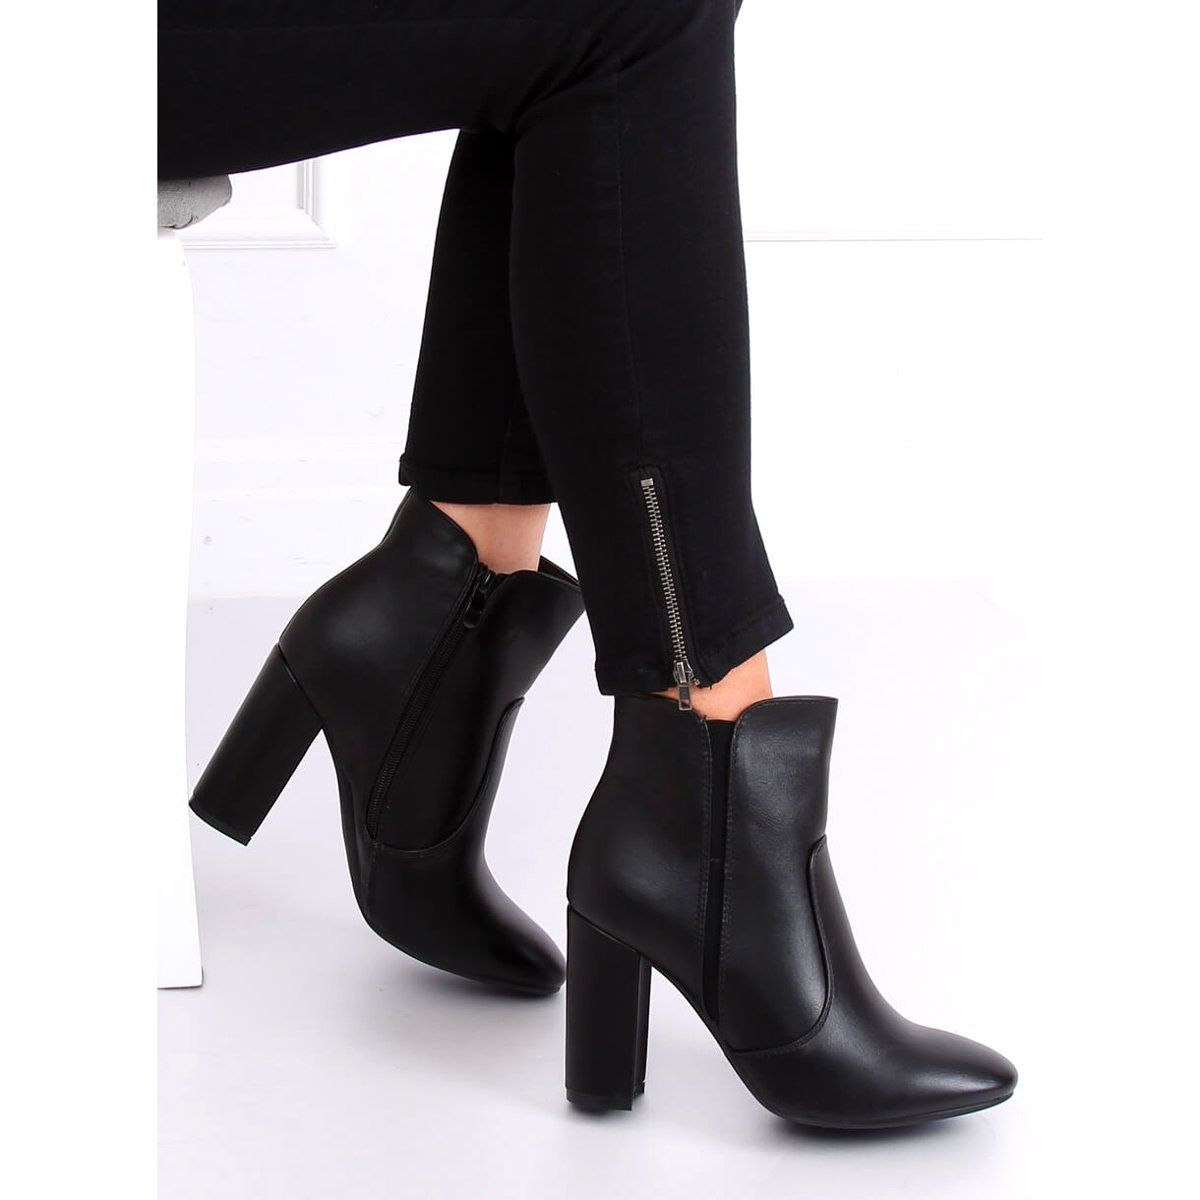 Sztyblety Damskie Buty Damskie A Little Glamour Chelsea Boots Boots Casual Shoes